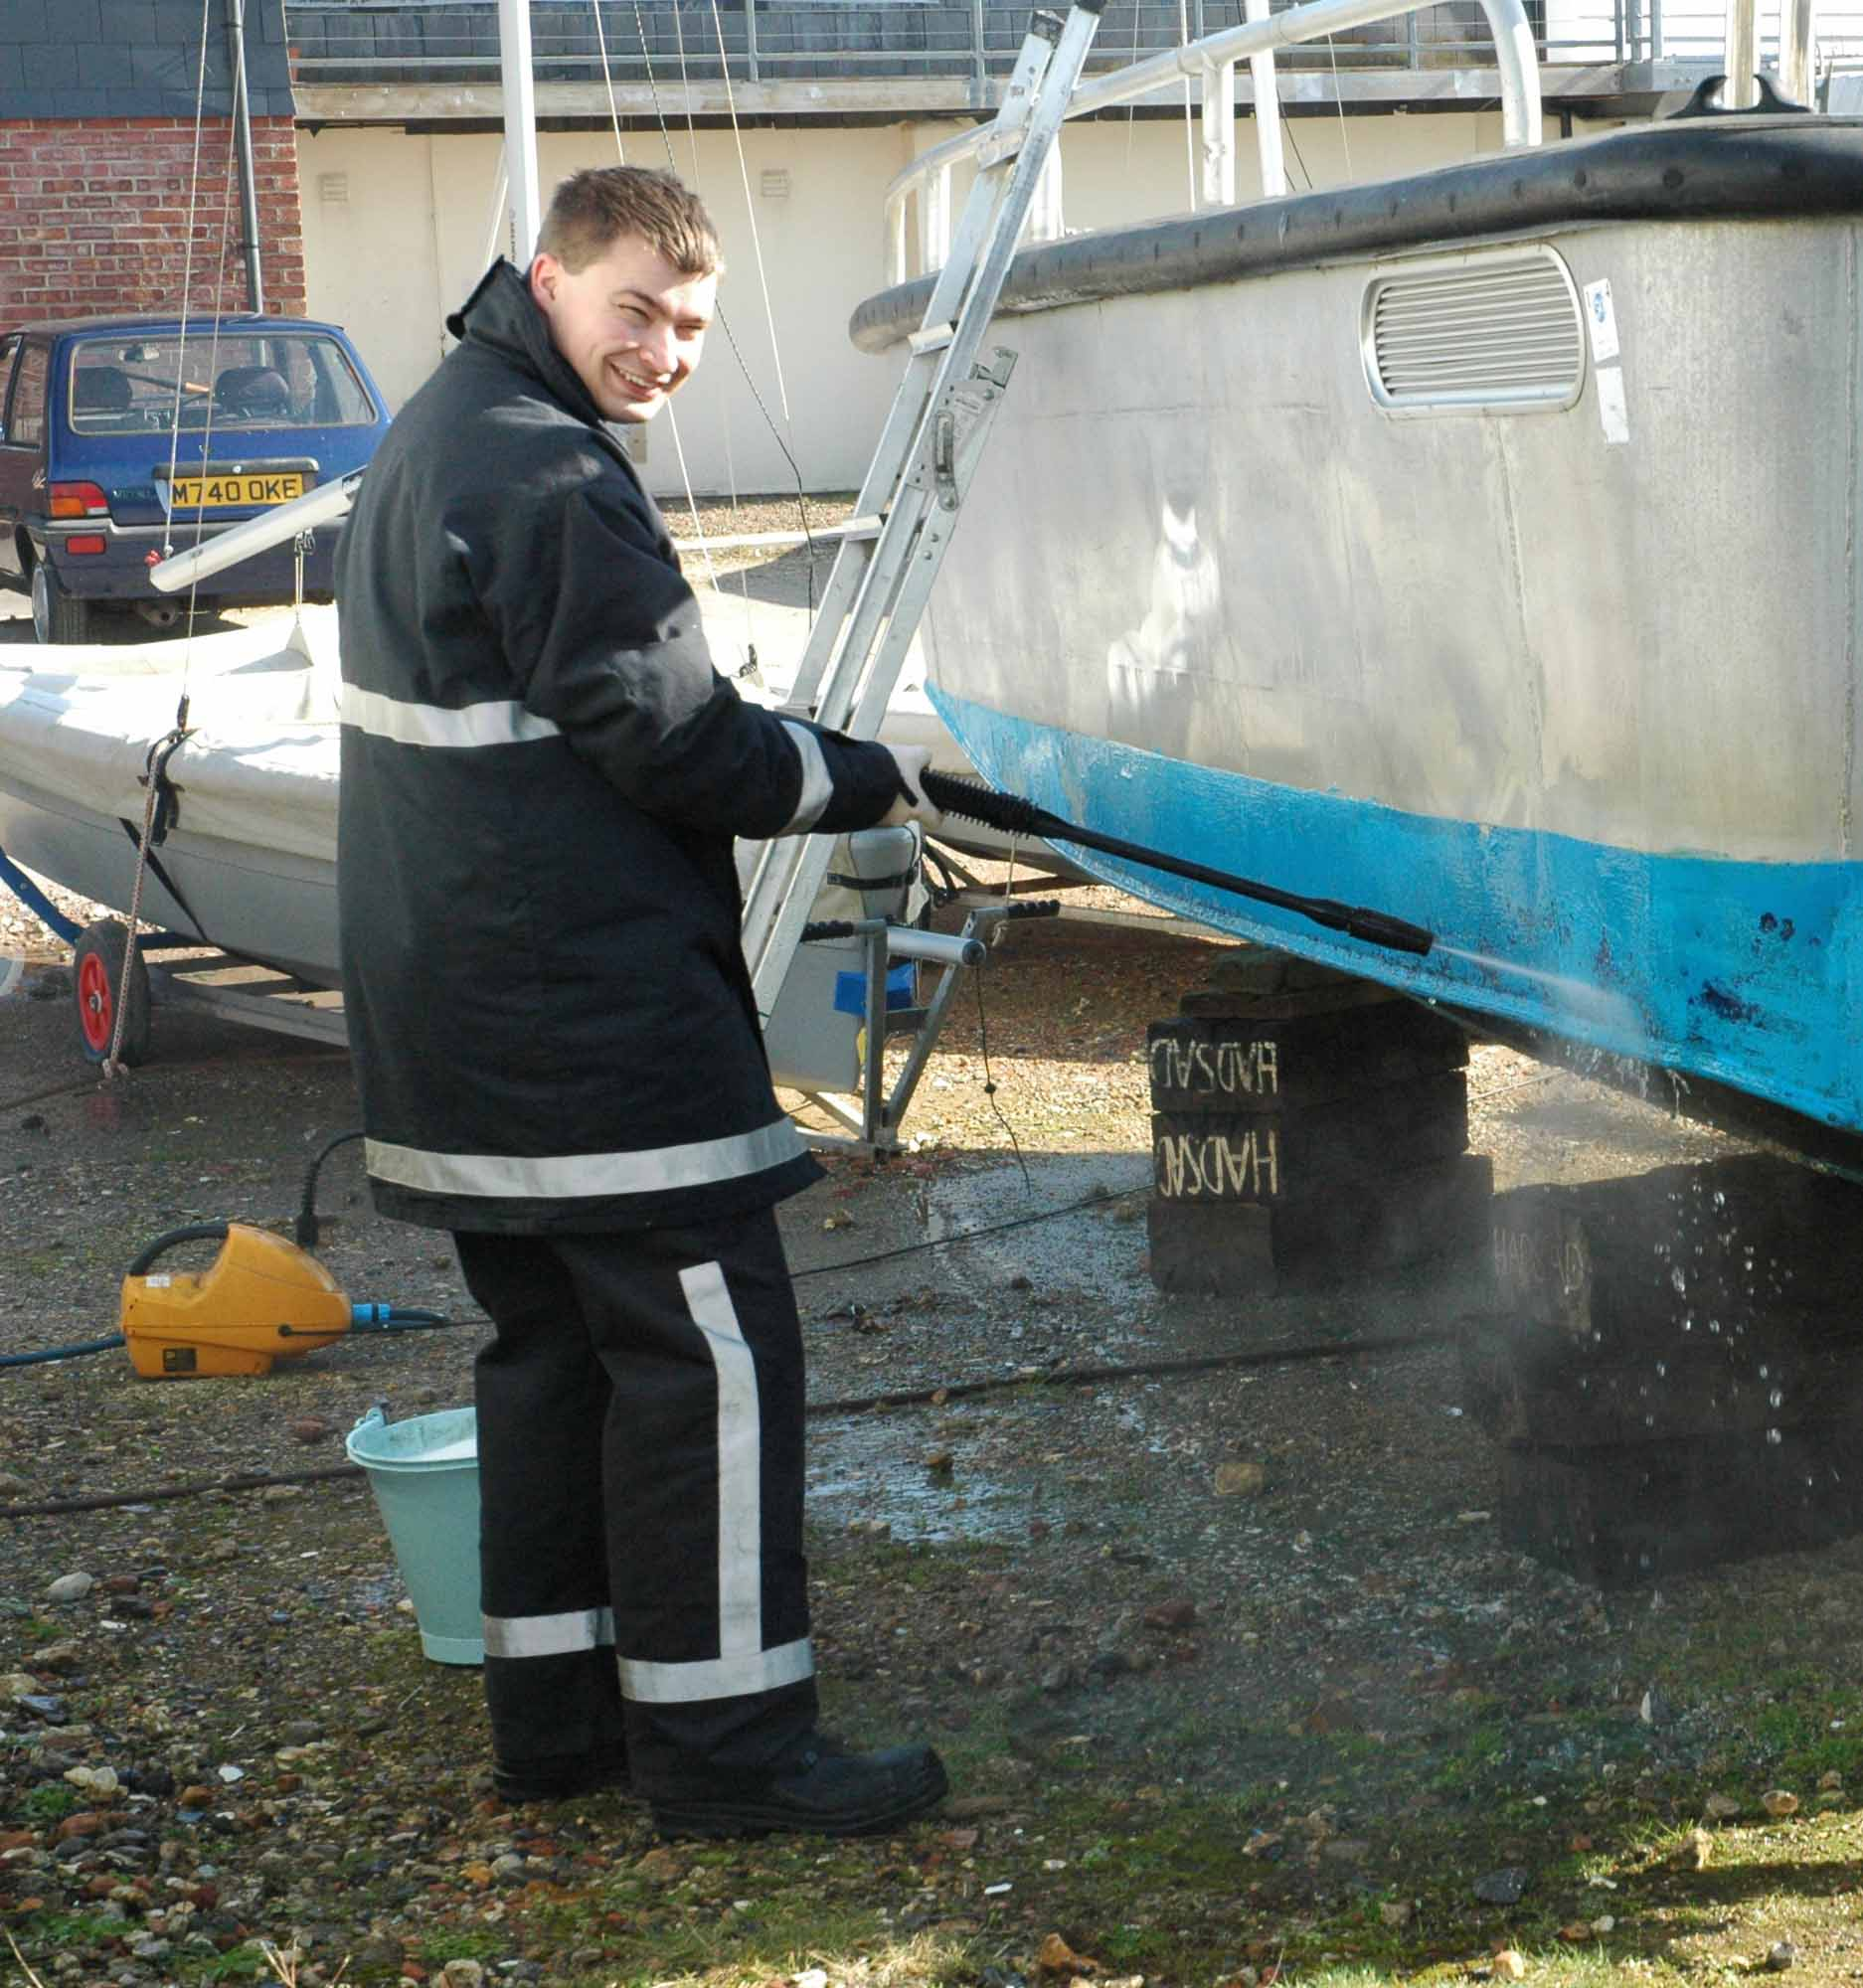 Luke cleaning the hull of Hilary Farrow